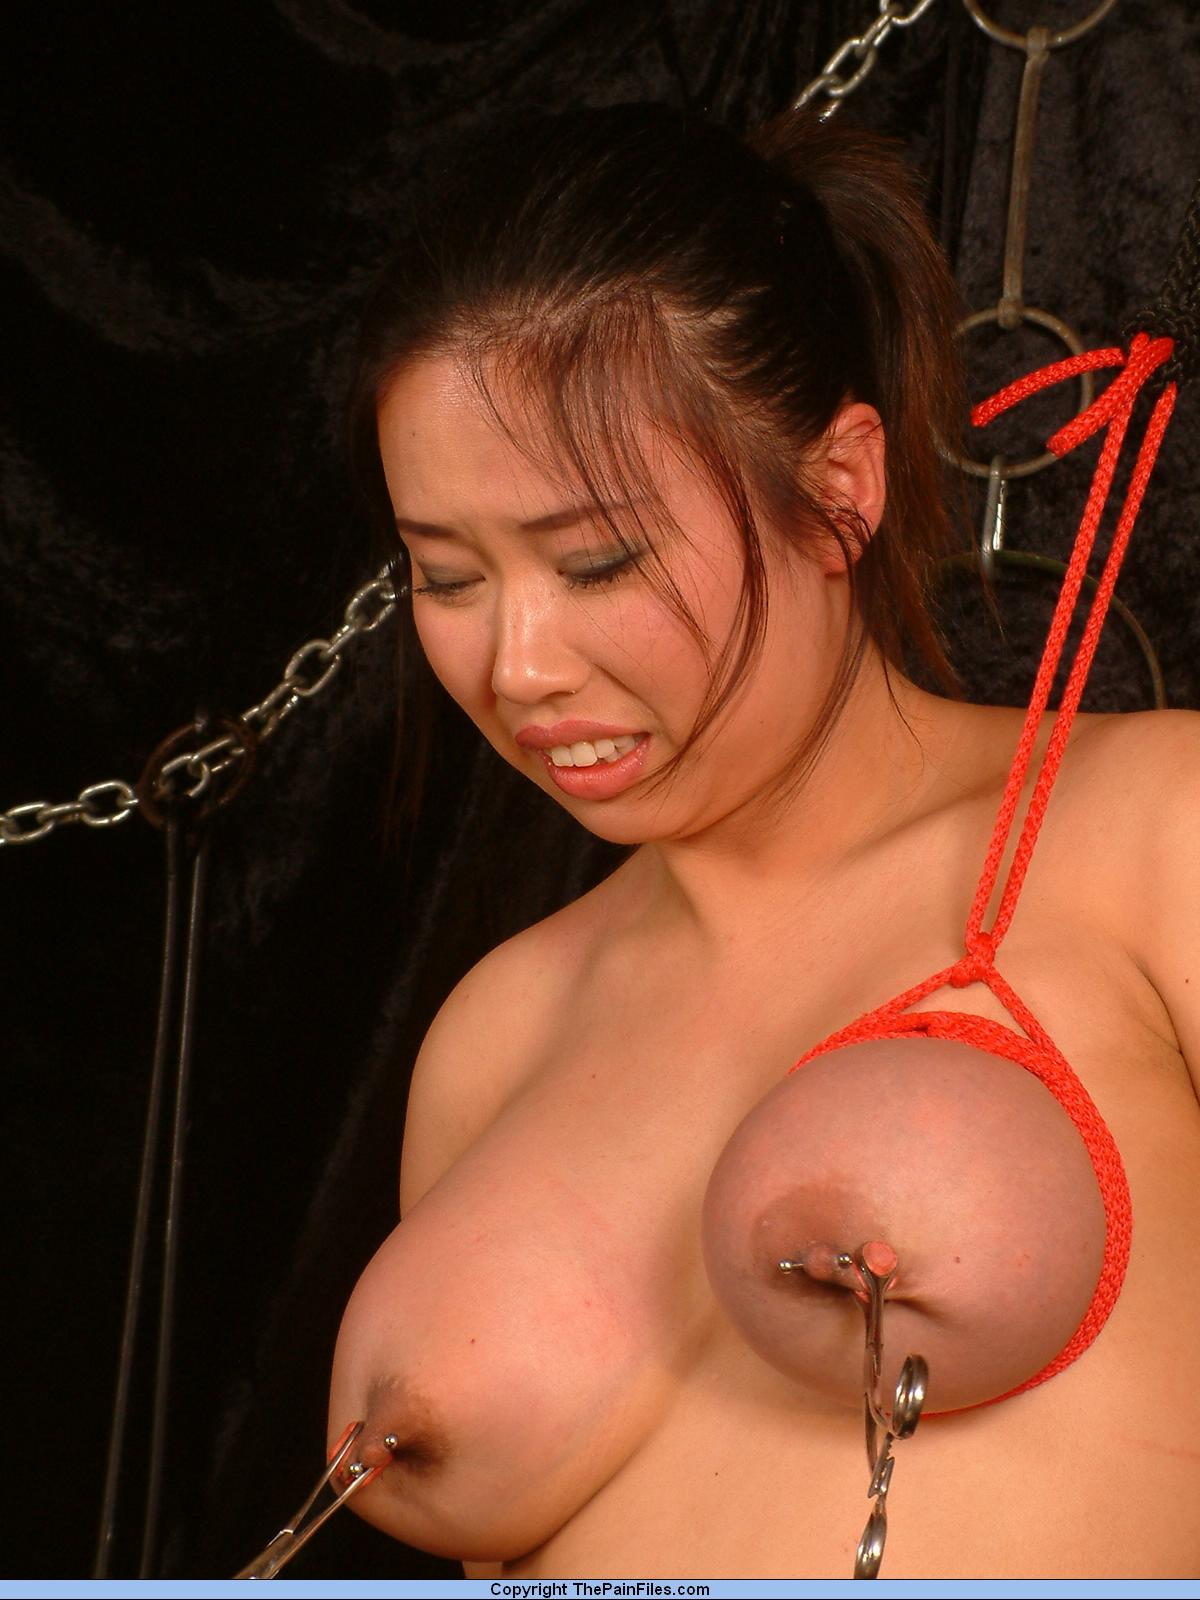 Opinion you Bdsm beautiful asian image interesting idea